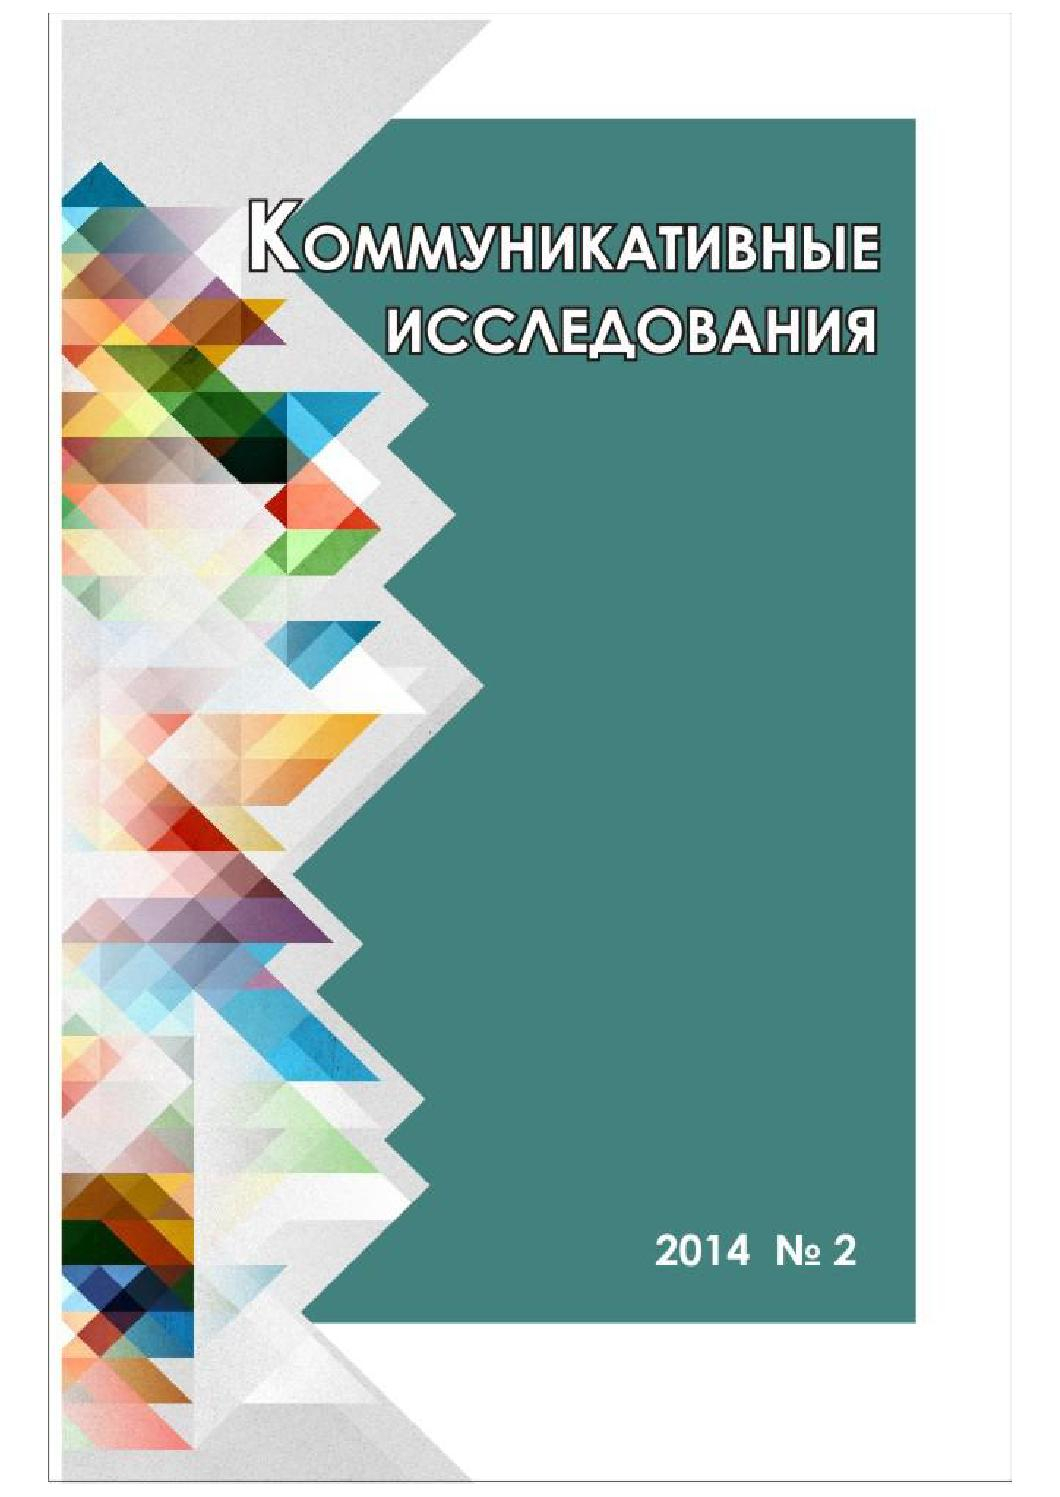 Communication Studies 2 2014 By Marina Terskikh  Issuu with Karane Enterprises A Calendar Year Manufacturer